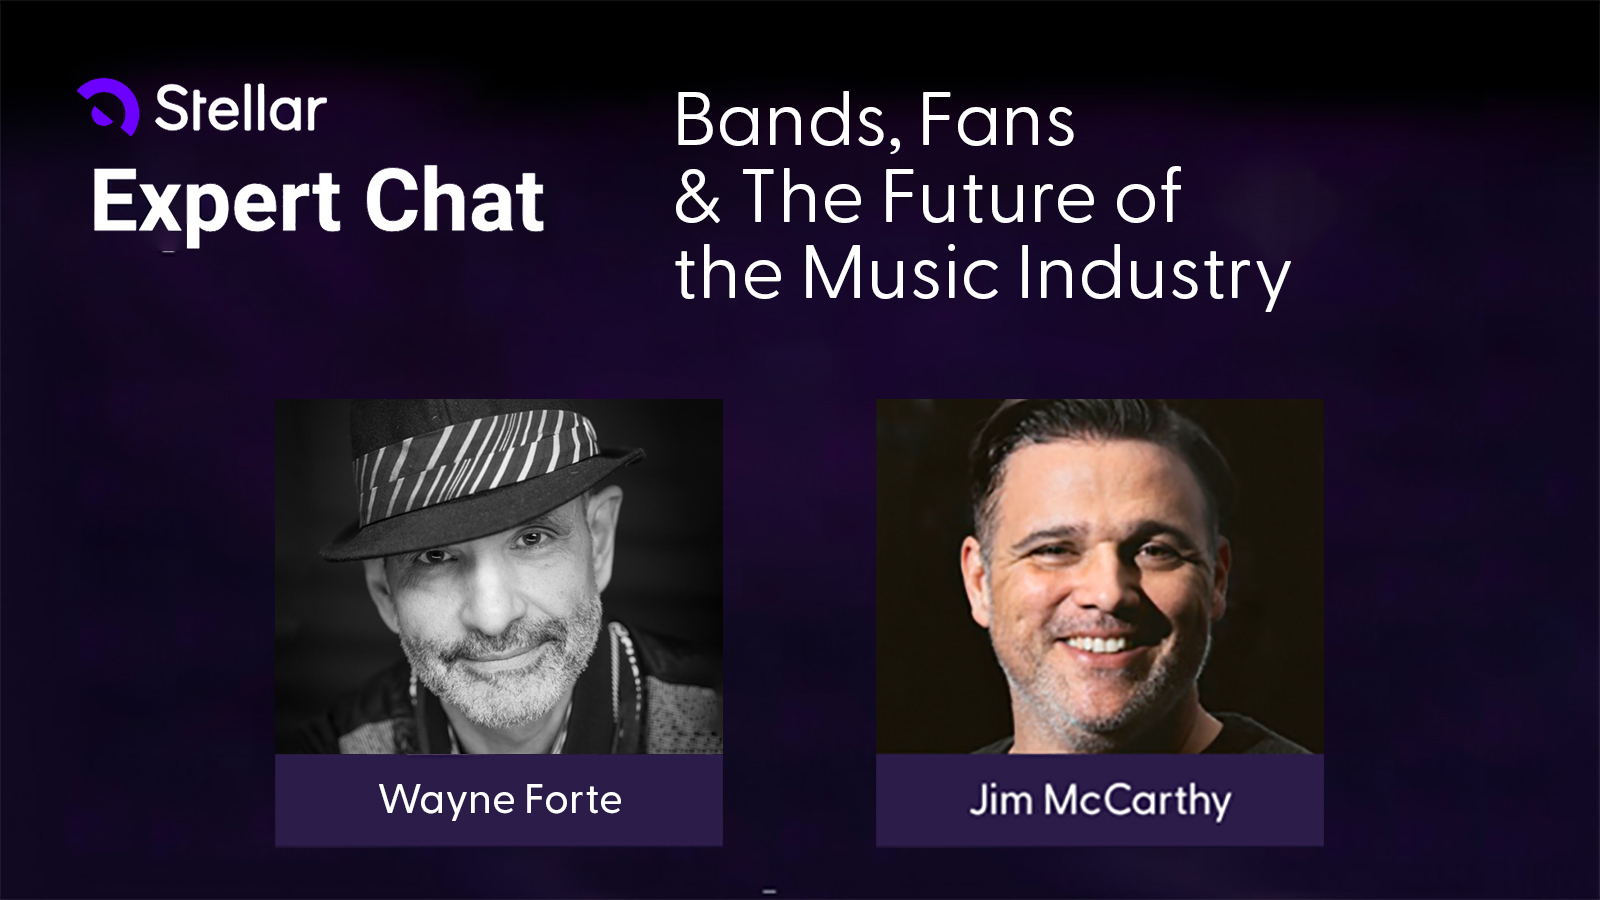 """""""Bands, Fans & The Future of the Music Industry"""": Expert Chat with Wayne Forte"""